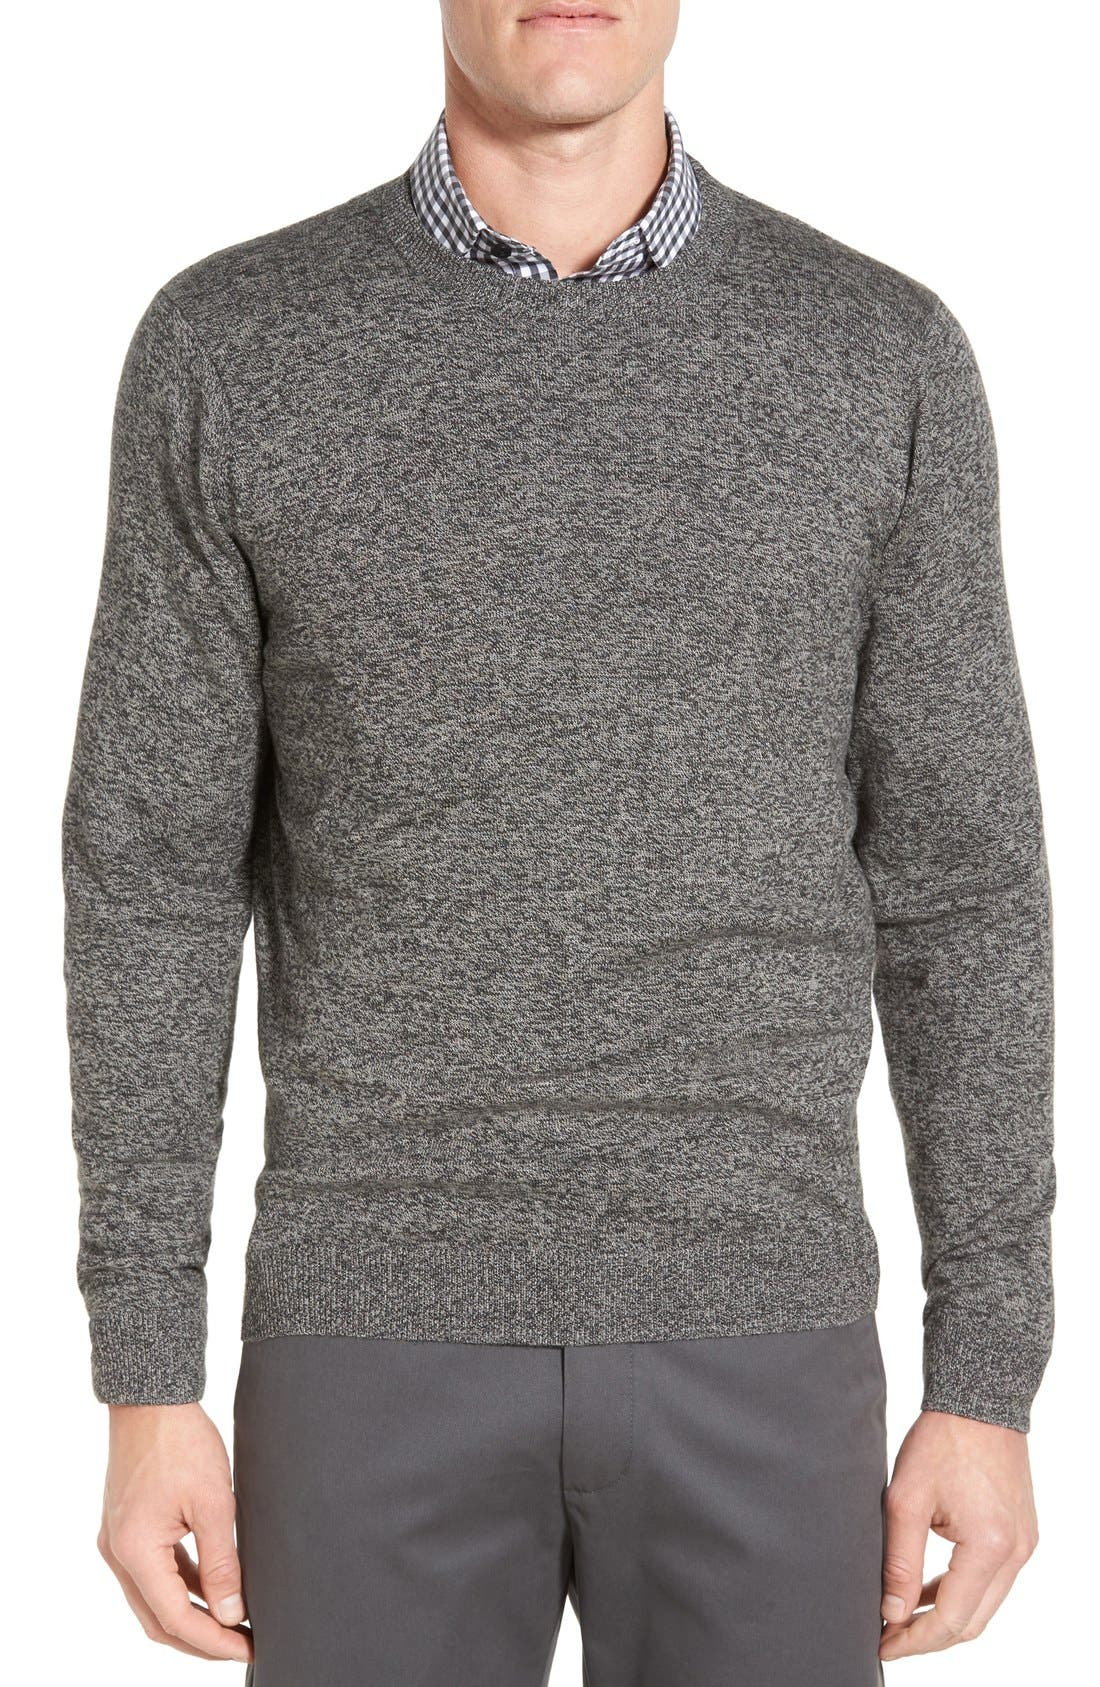 Men's Cashmere Blend Sweaters | Nordstrom